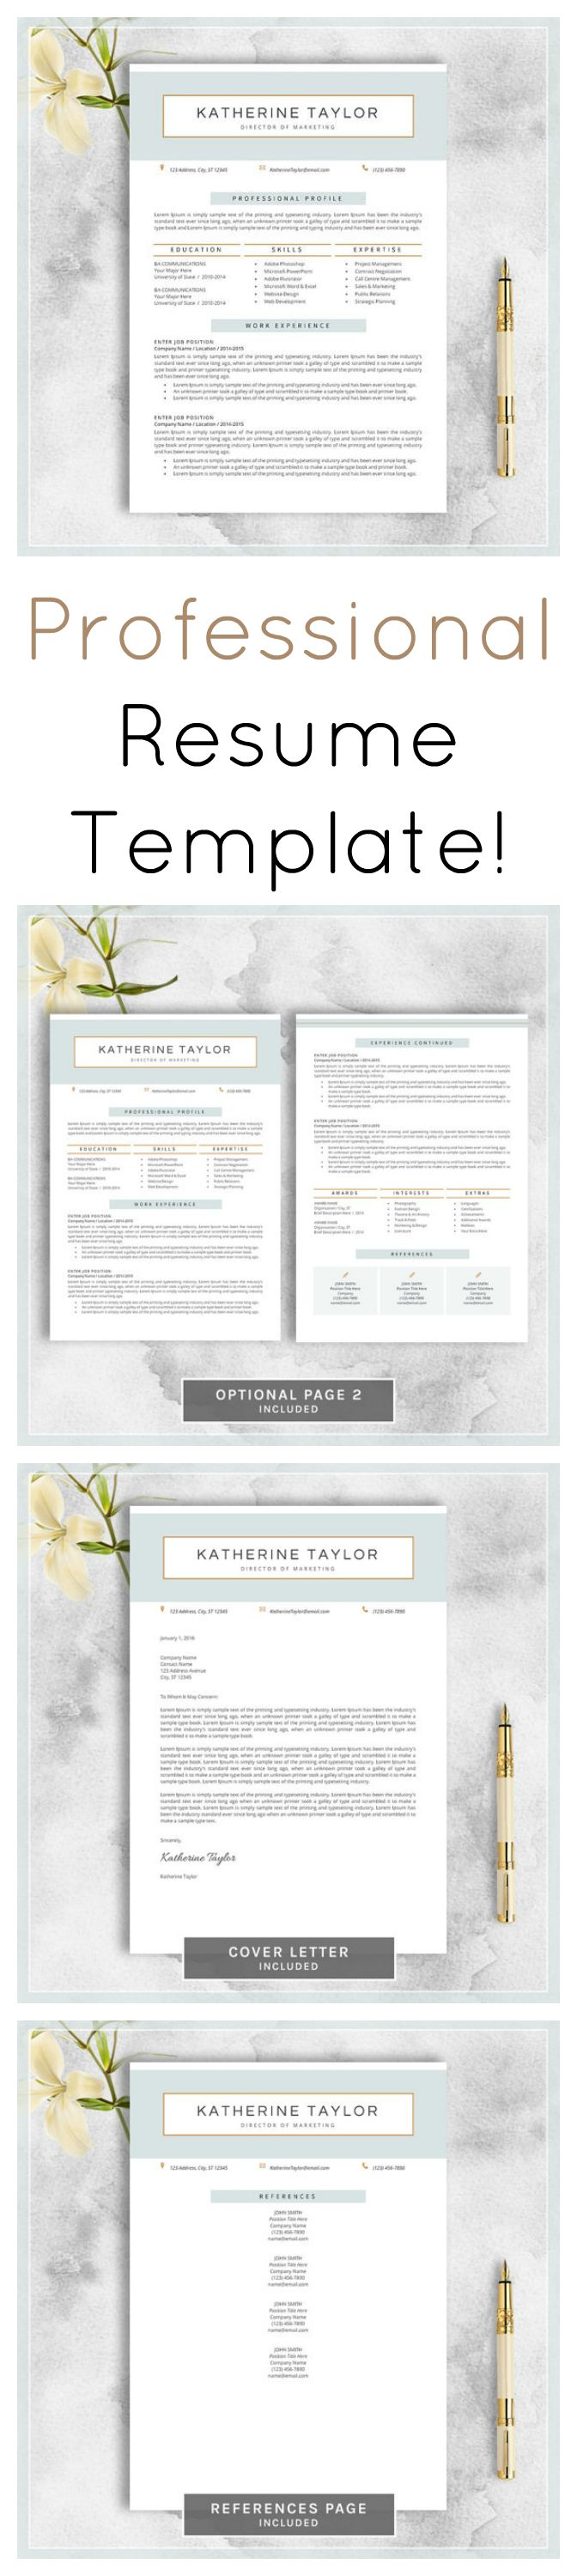 LOVE this stylish and modern resume template set!!  Adapt it and move your career ahead. Professional Resume Template, CV Template for MS Word, Creative Resume, Modern Resume Design, Resume Instant Download #ad